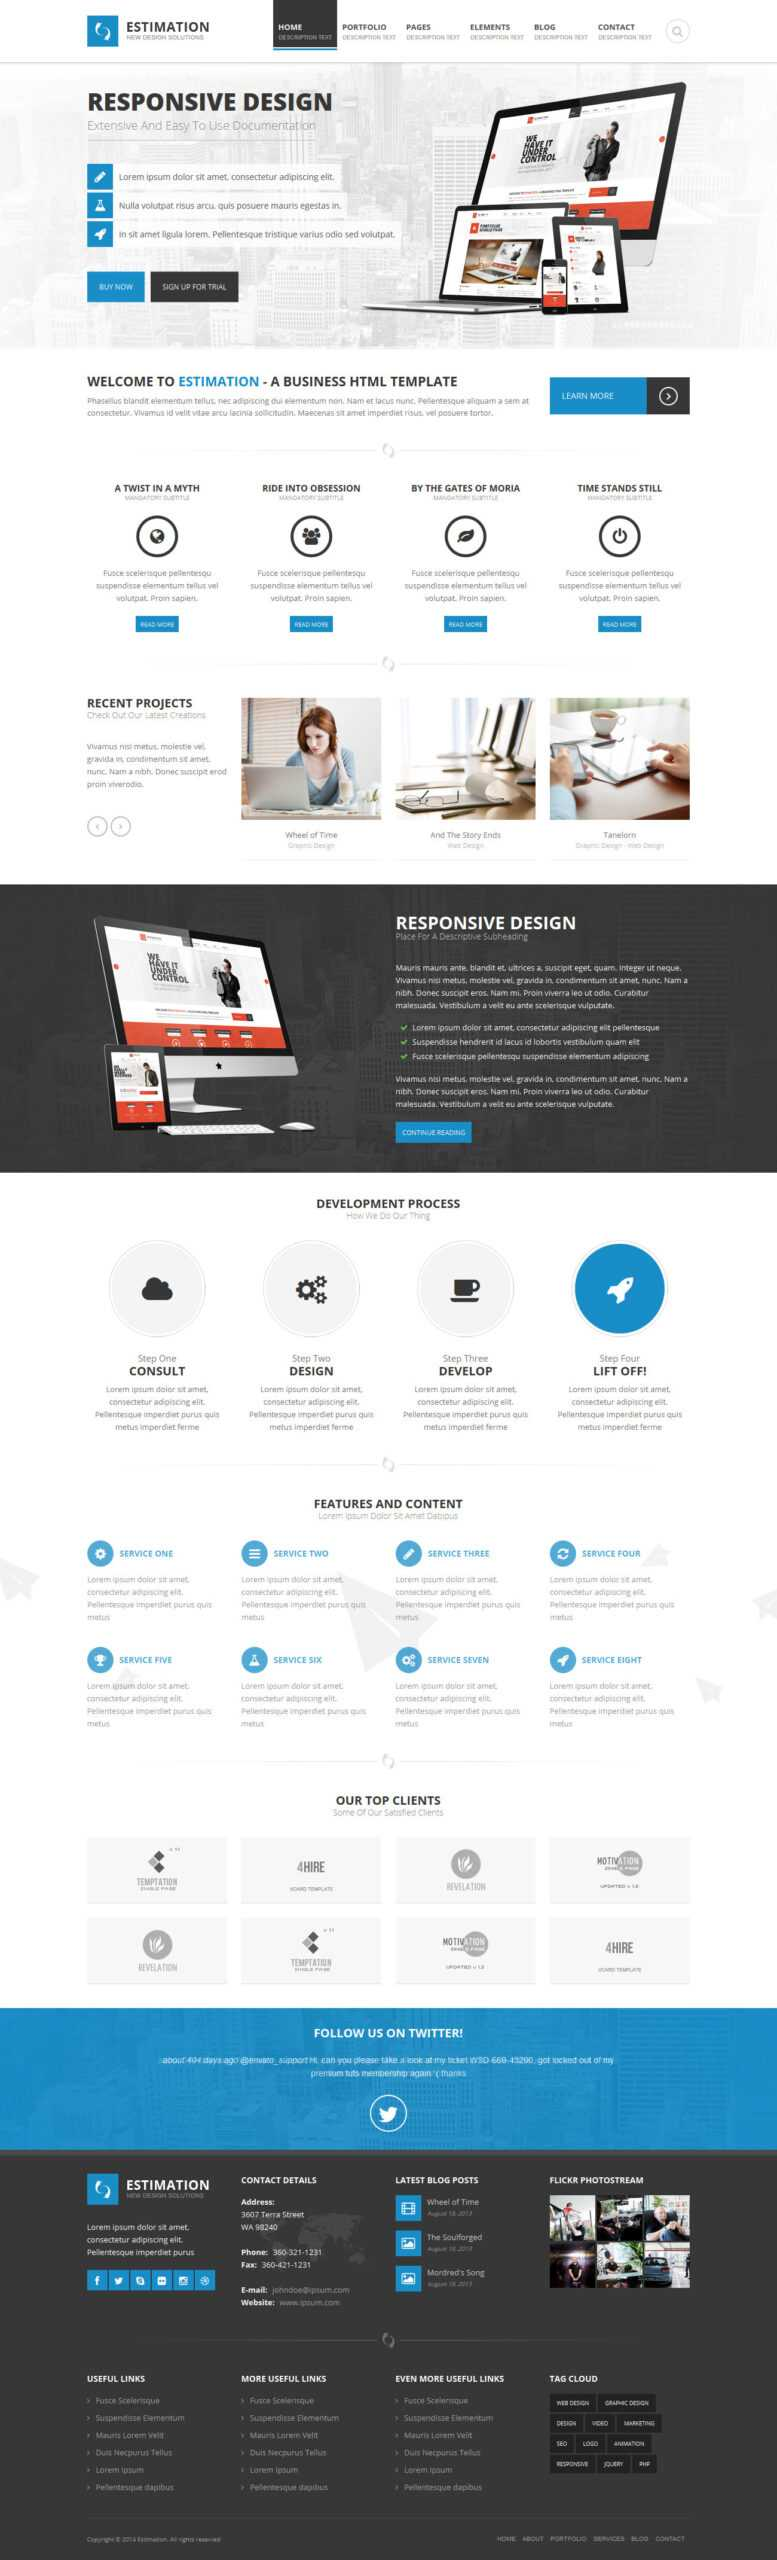 Estimation - Responsive Business Html Template Inside Estimation Responsive Business Html Template Free Download